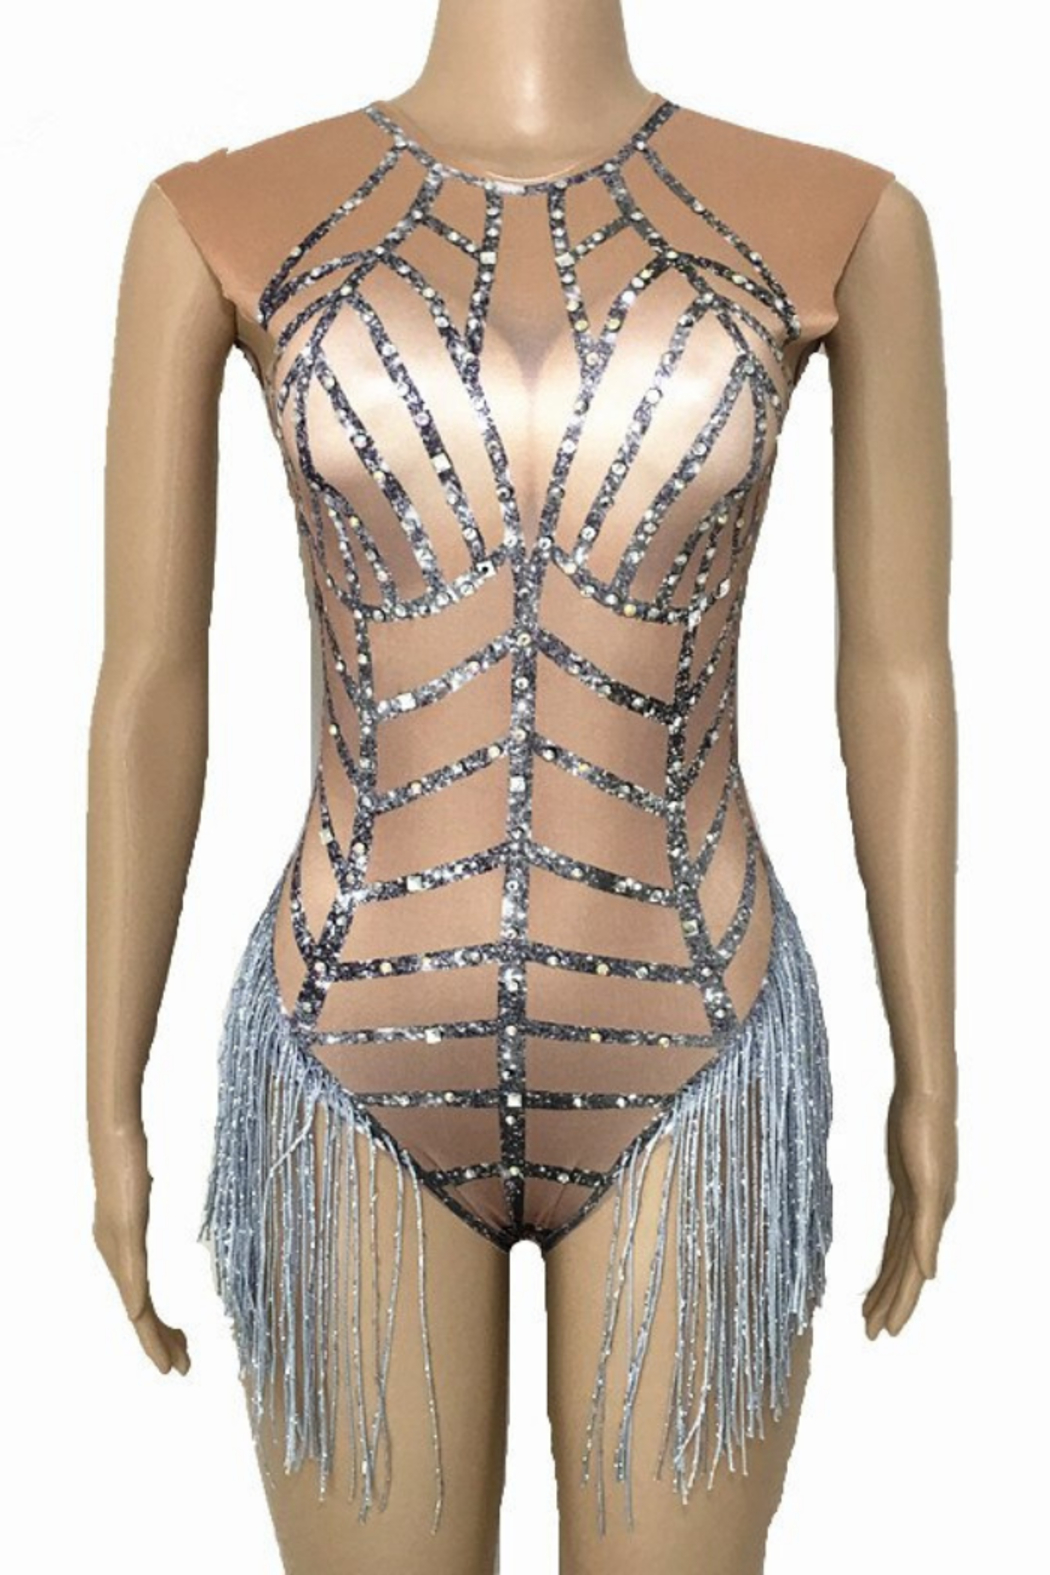 Tiny House of Fashion Nude Fringe Bodysuit - Main Image